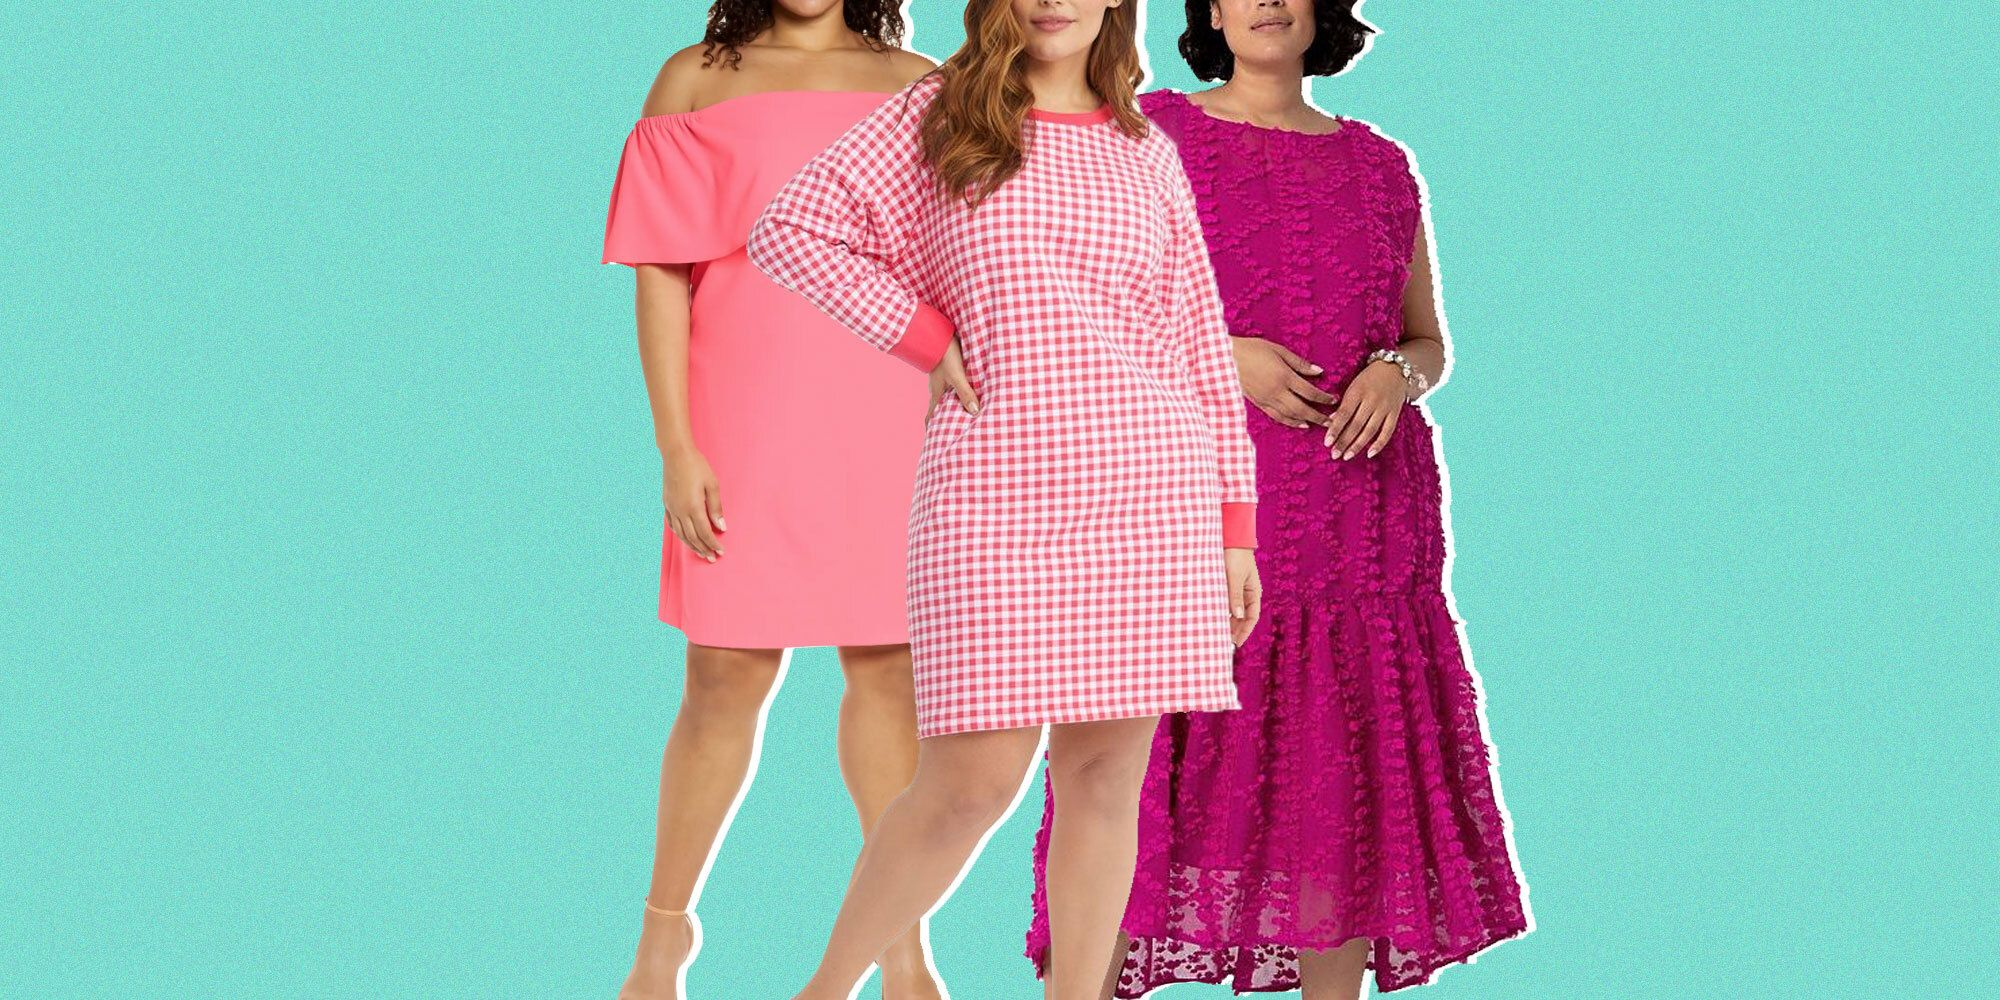 Pink striped midi dress below the knee hem length with short sleeves and boat neckline